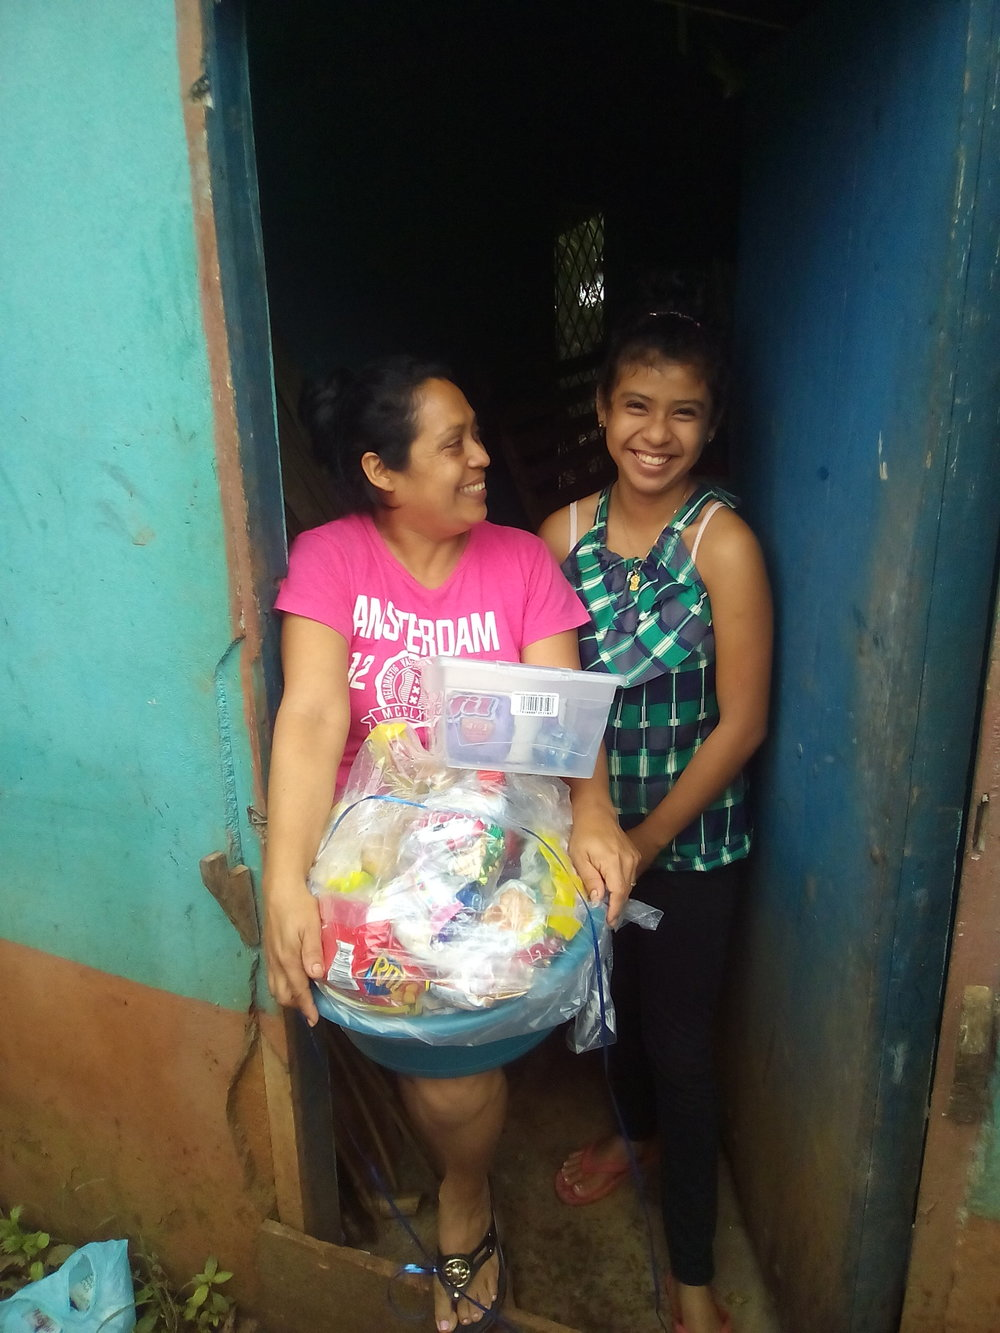 - Elizabeth (left) and Melisa (right). It was Melisa's birthday on that day. They were grateful for the basket, praise the Lord!